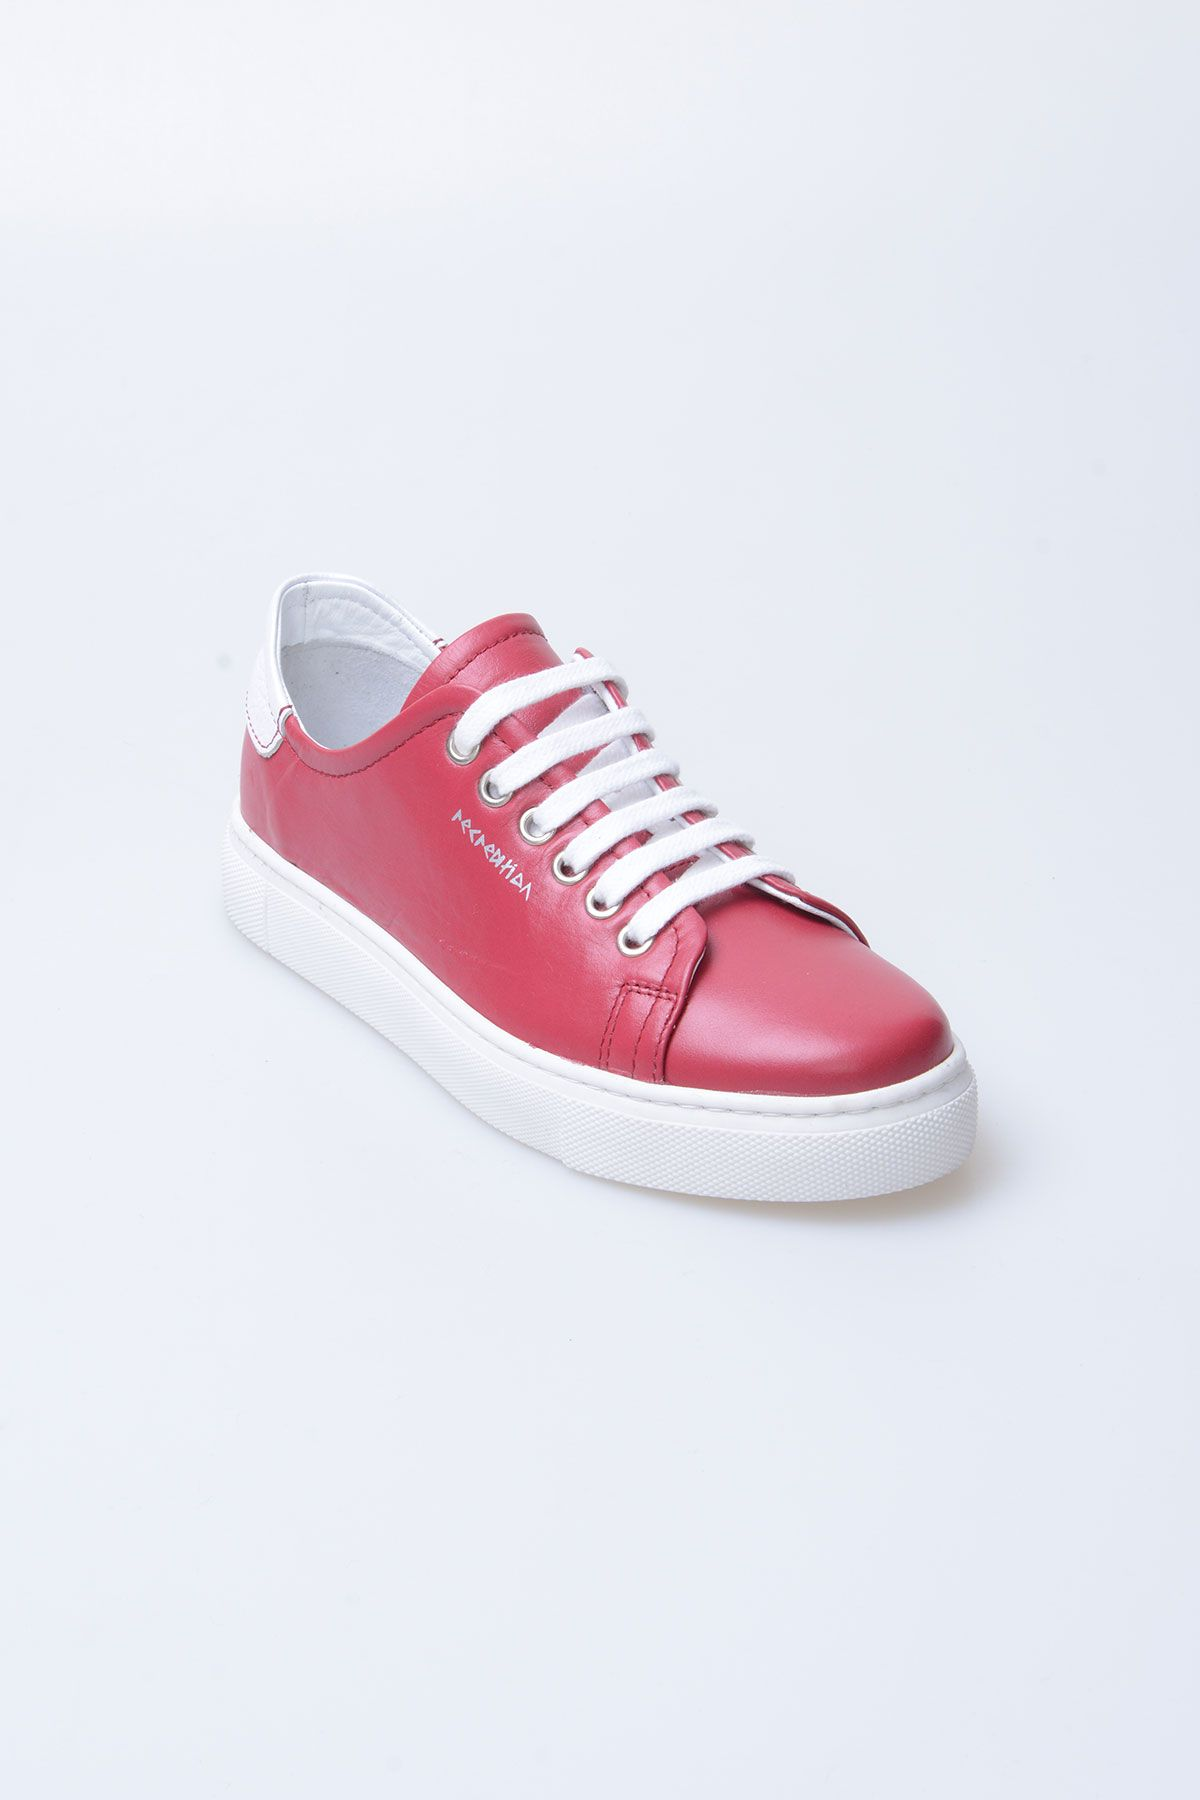 Pegia Recreation Hakiki Deri Bayan Sneaker 19REC201 Fuşya